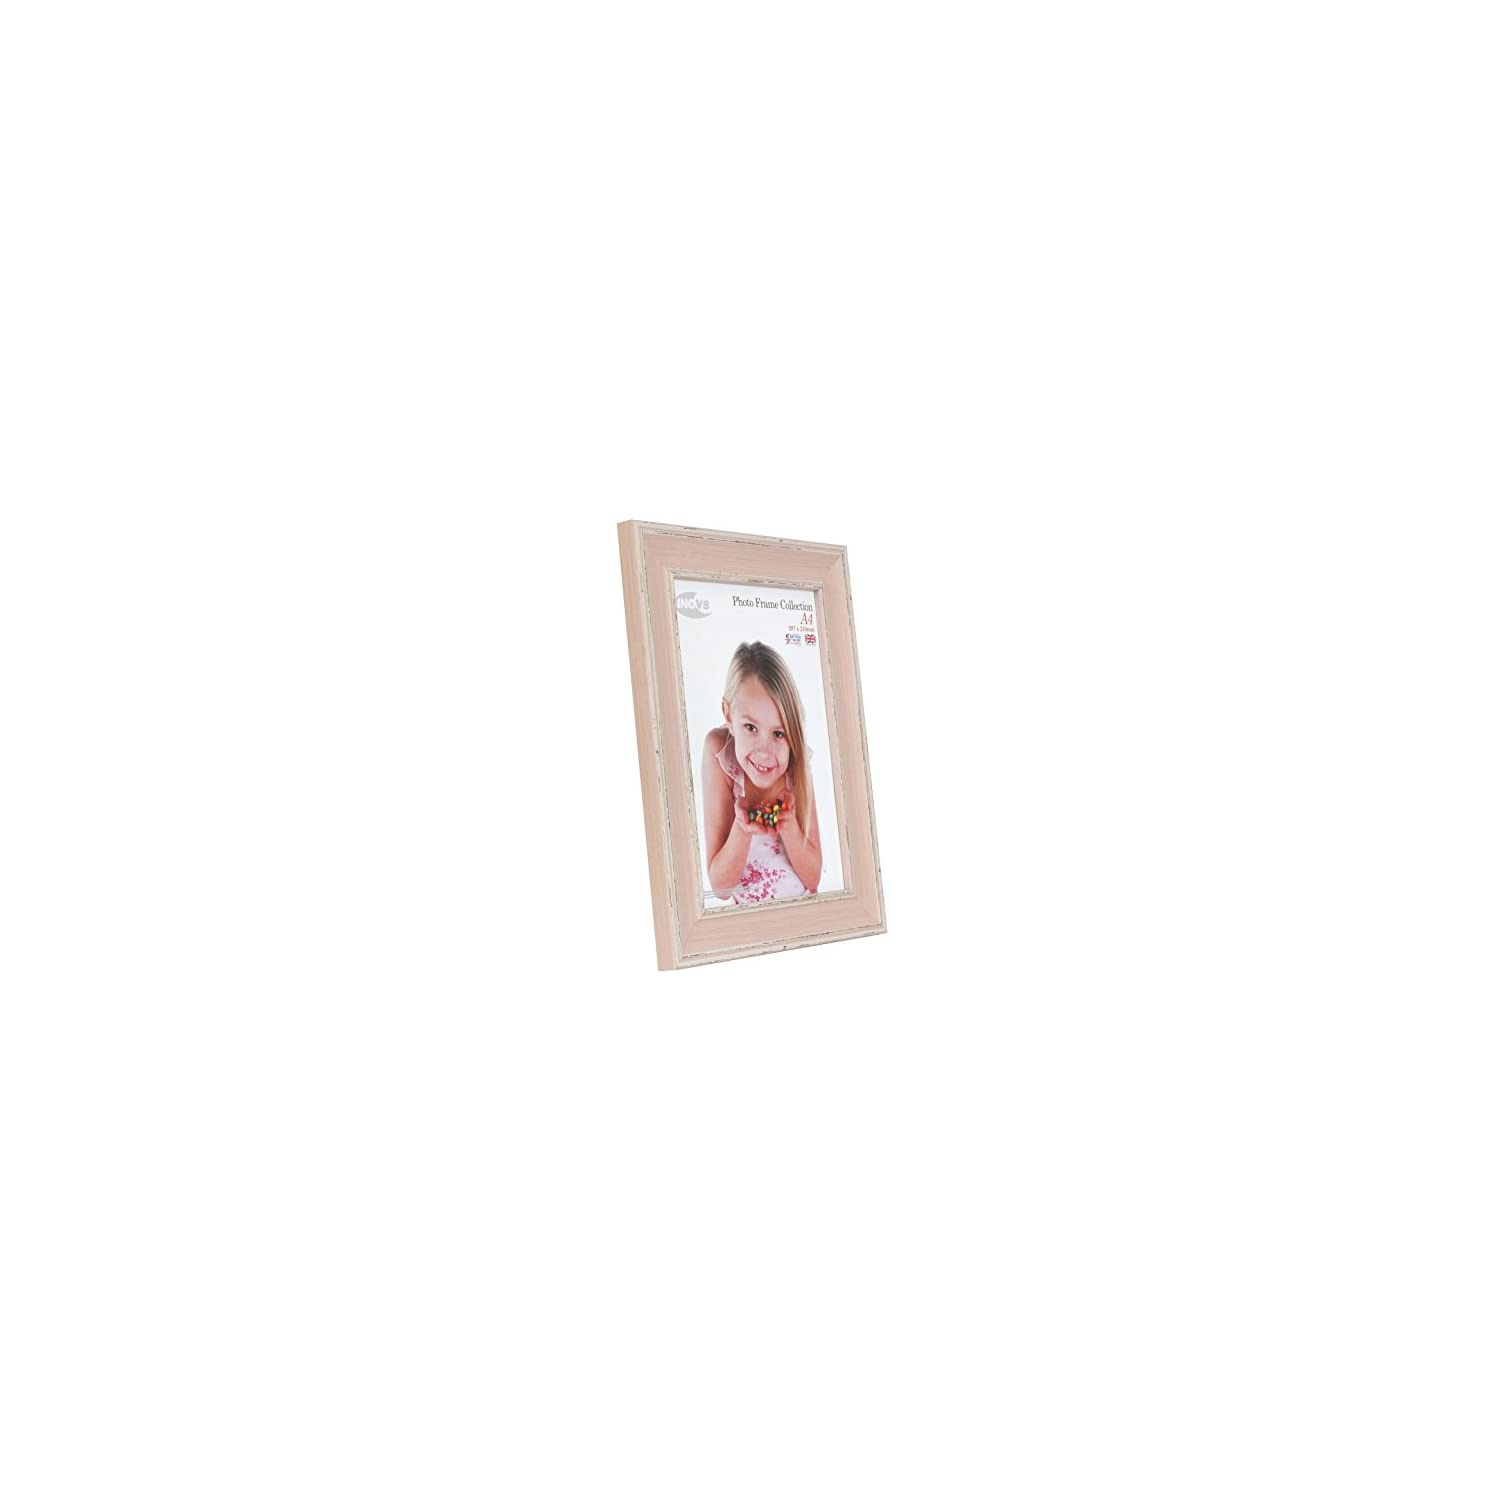 Inov8 A4 Large Traditional Picture/Photo Frame, Pack Of 4, Washed Pink